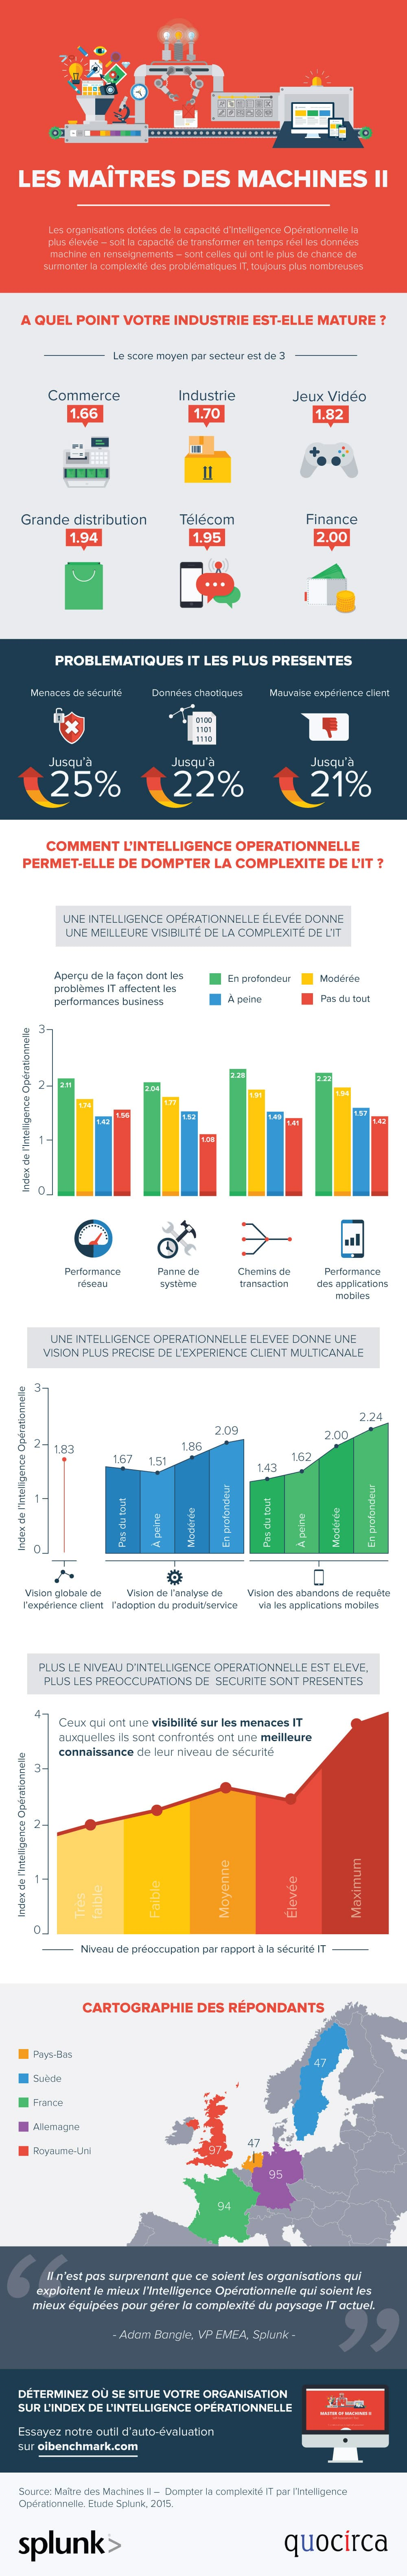 Splunk-Master-of-Machines-II_infographic_FRENCH_FINAL